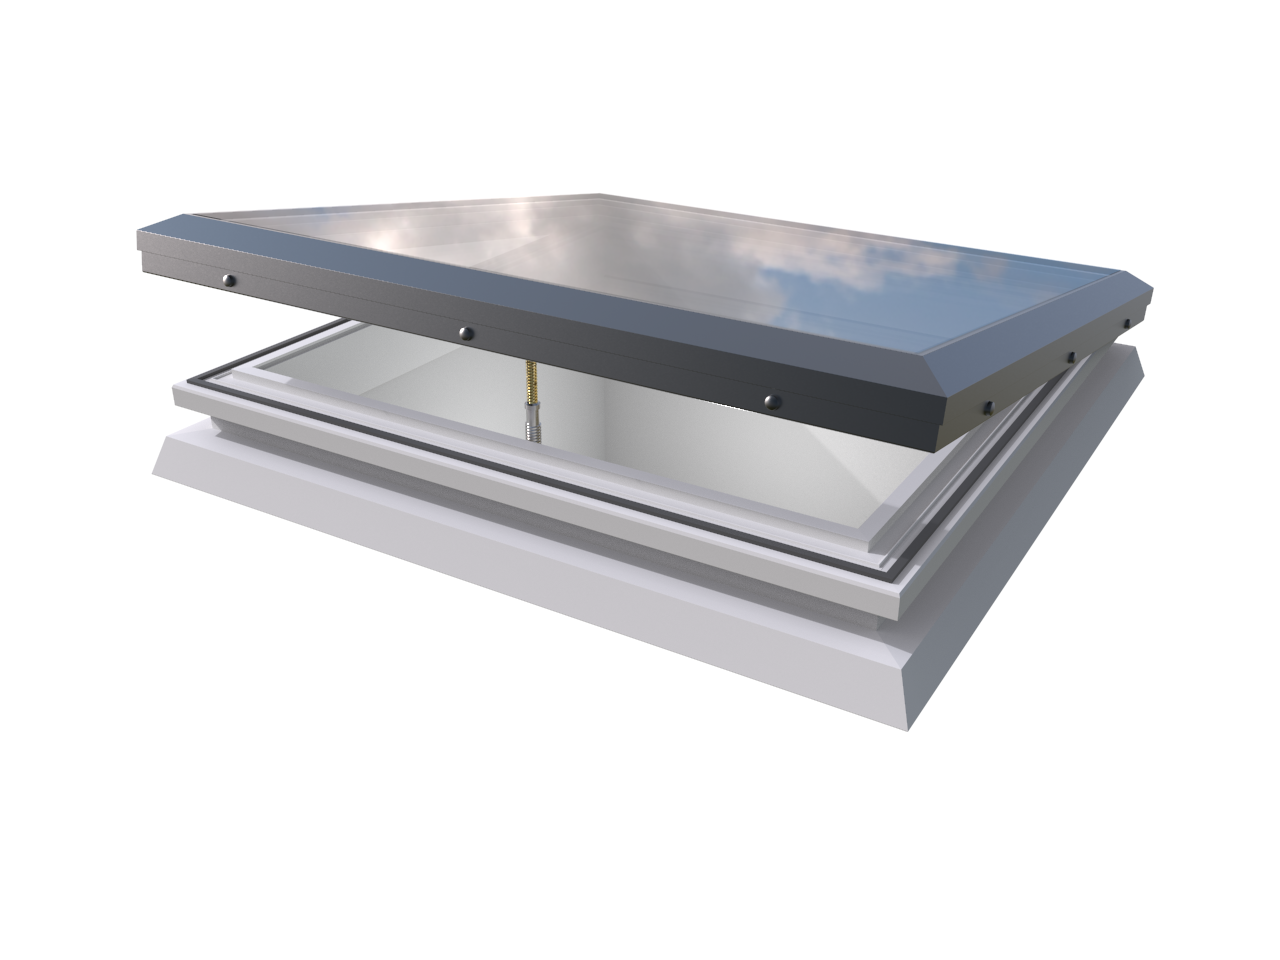 Mardome Glass Trade Rooflight Manual Hinge